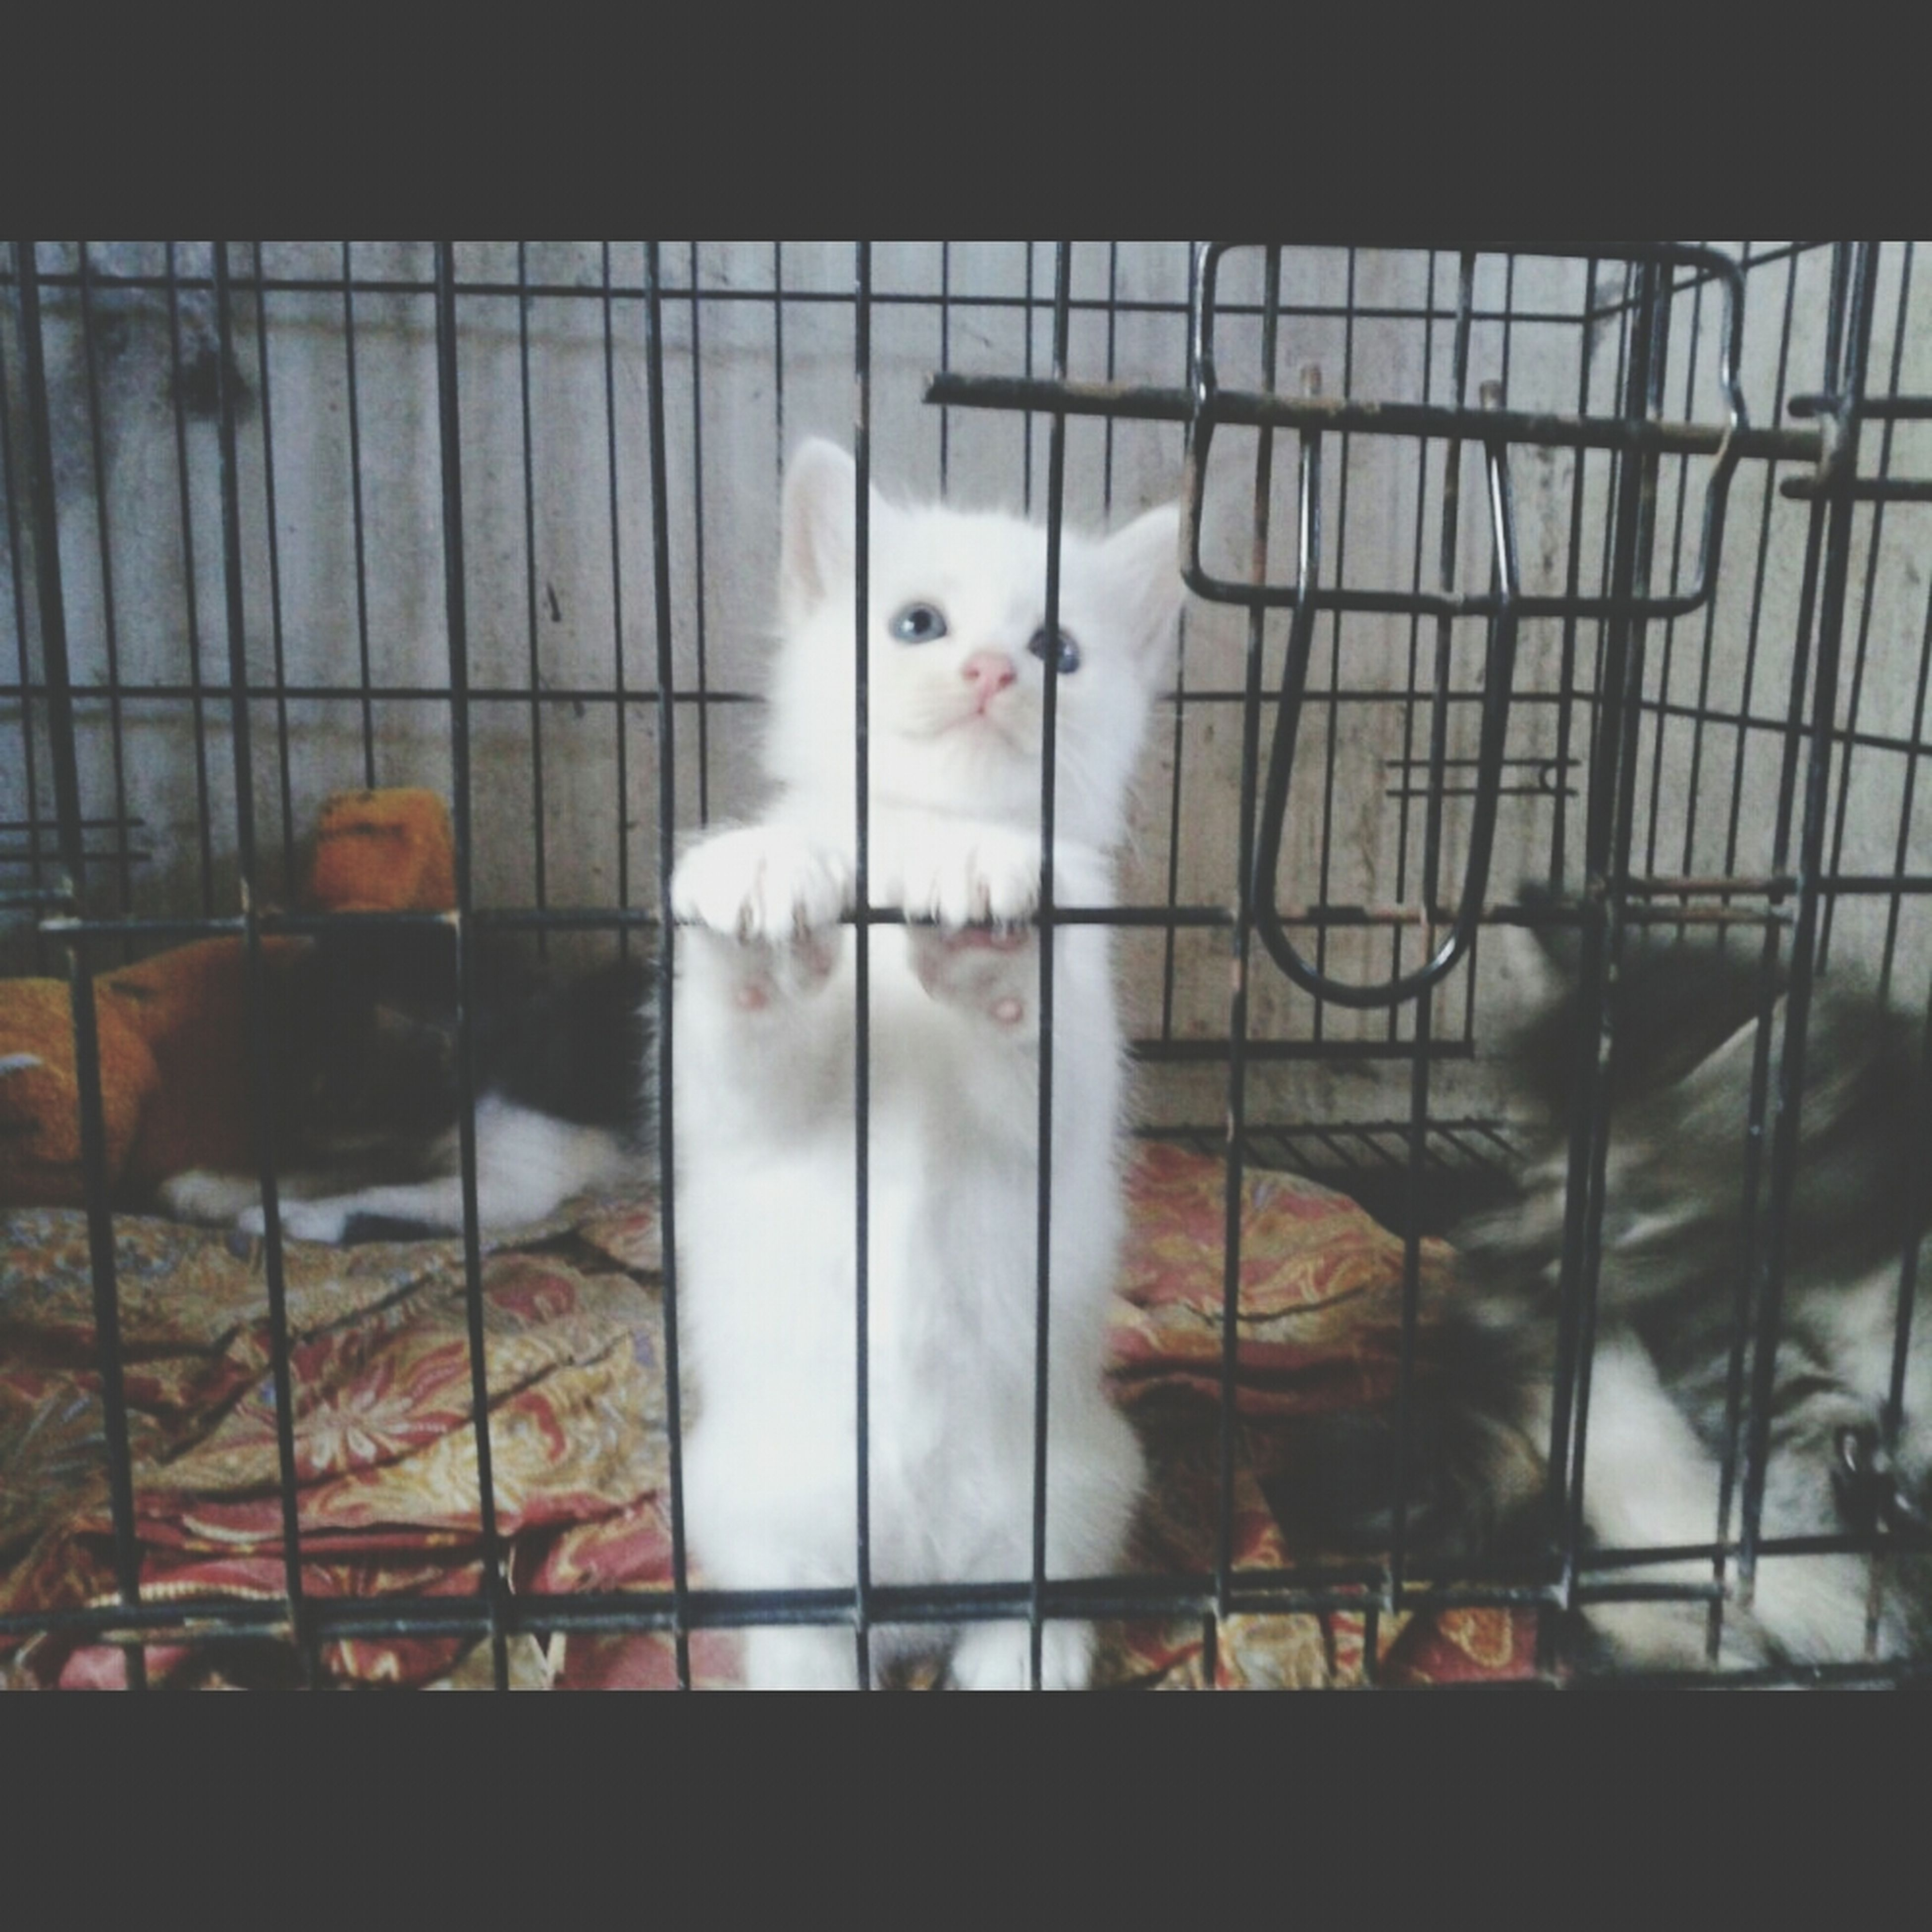 animal themes, domestic animals, pets, domestic cat, cat, one animal, indoors, mammal, feline, window, cage, two animals, relaxation, portrait, zoology, white color, looking at camera, whisker, no people, close-up